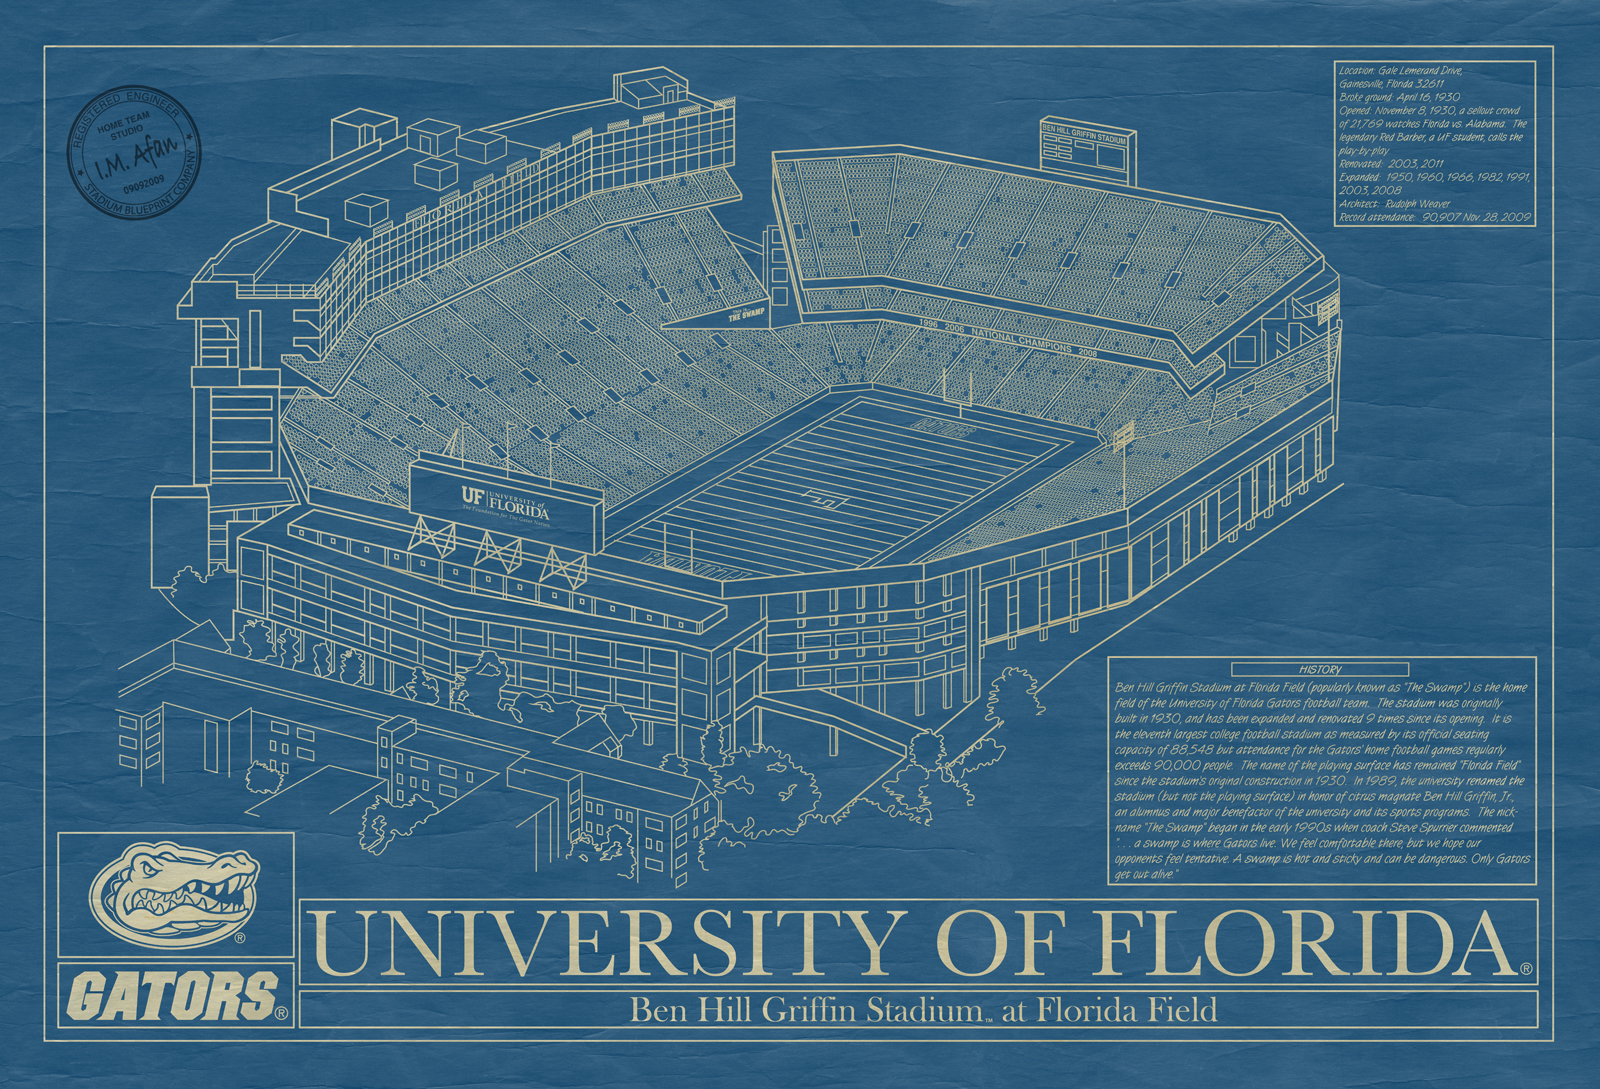 florida ben hill griffin stadium blueprint art